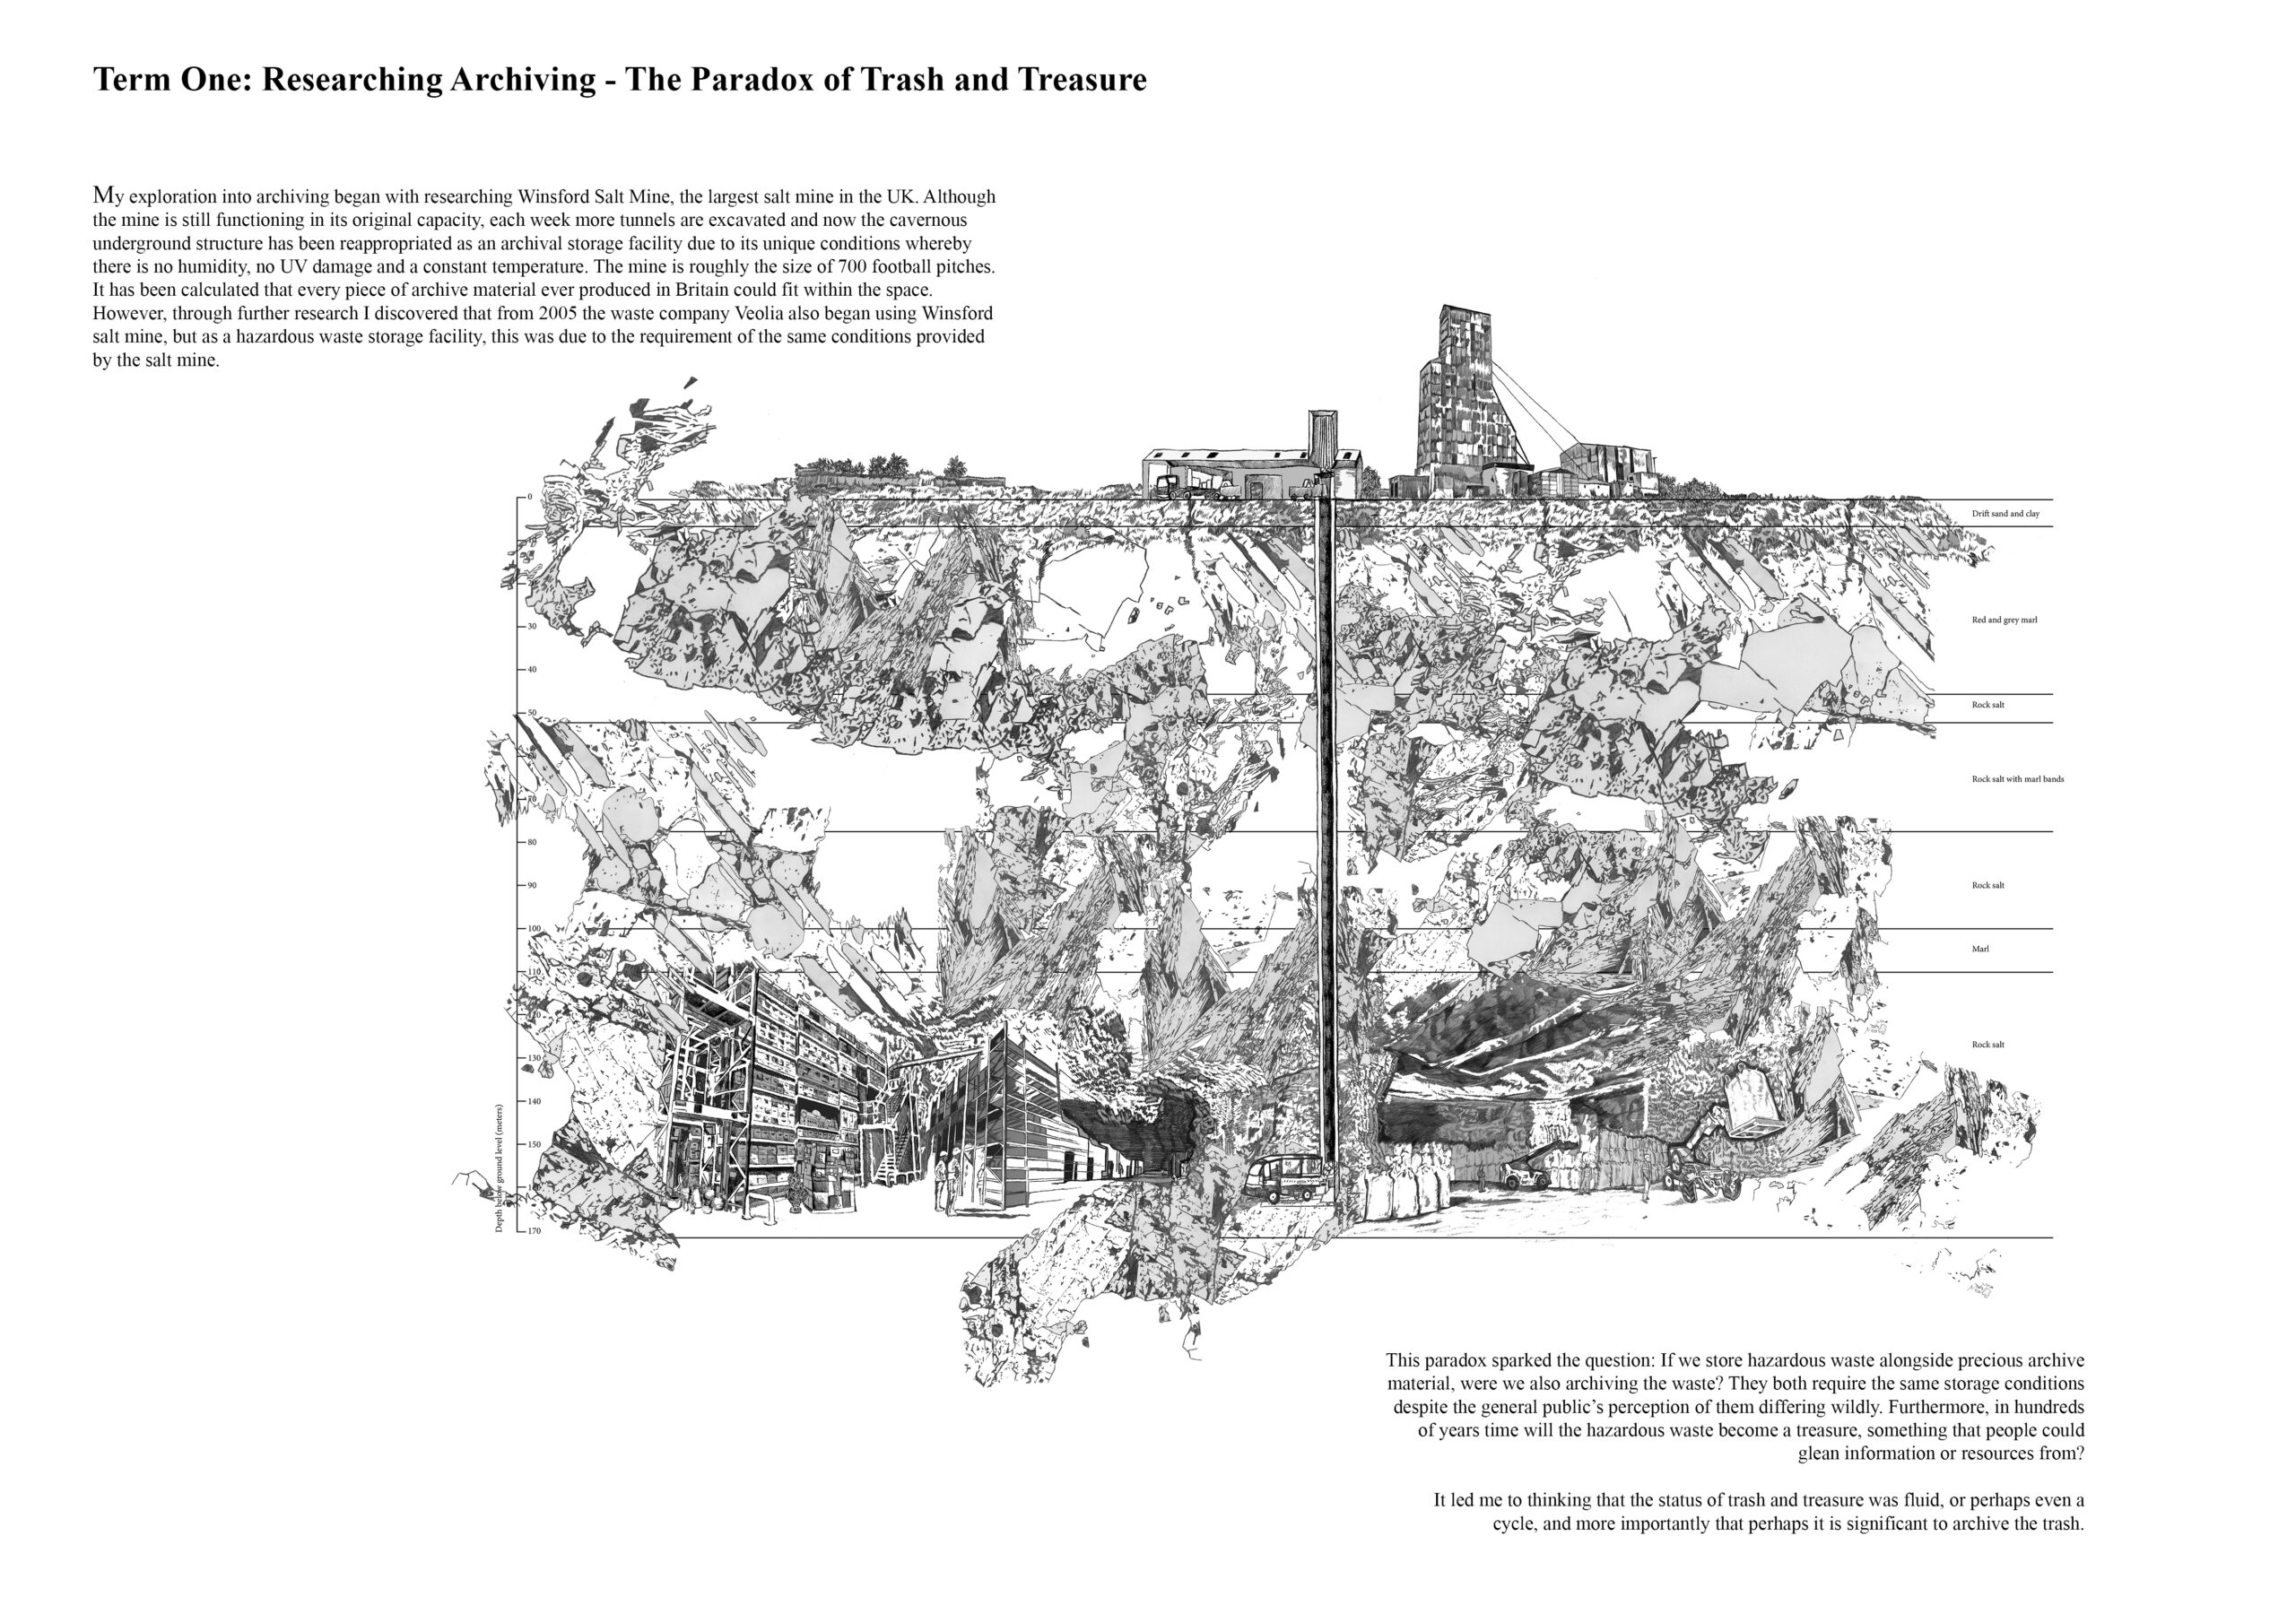 Portfolio Page exploring the paradox of trash and treasure. A diagram of the Winsford Salt Mine showing the hazardous waste that is stored in the same location as the precious archive material.